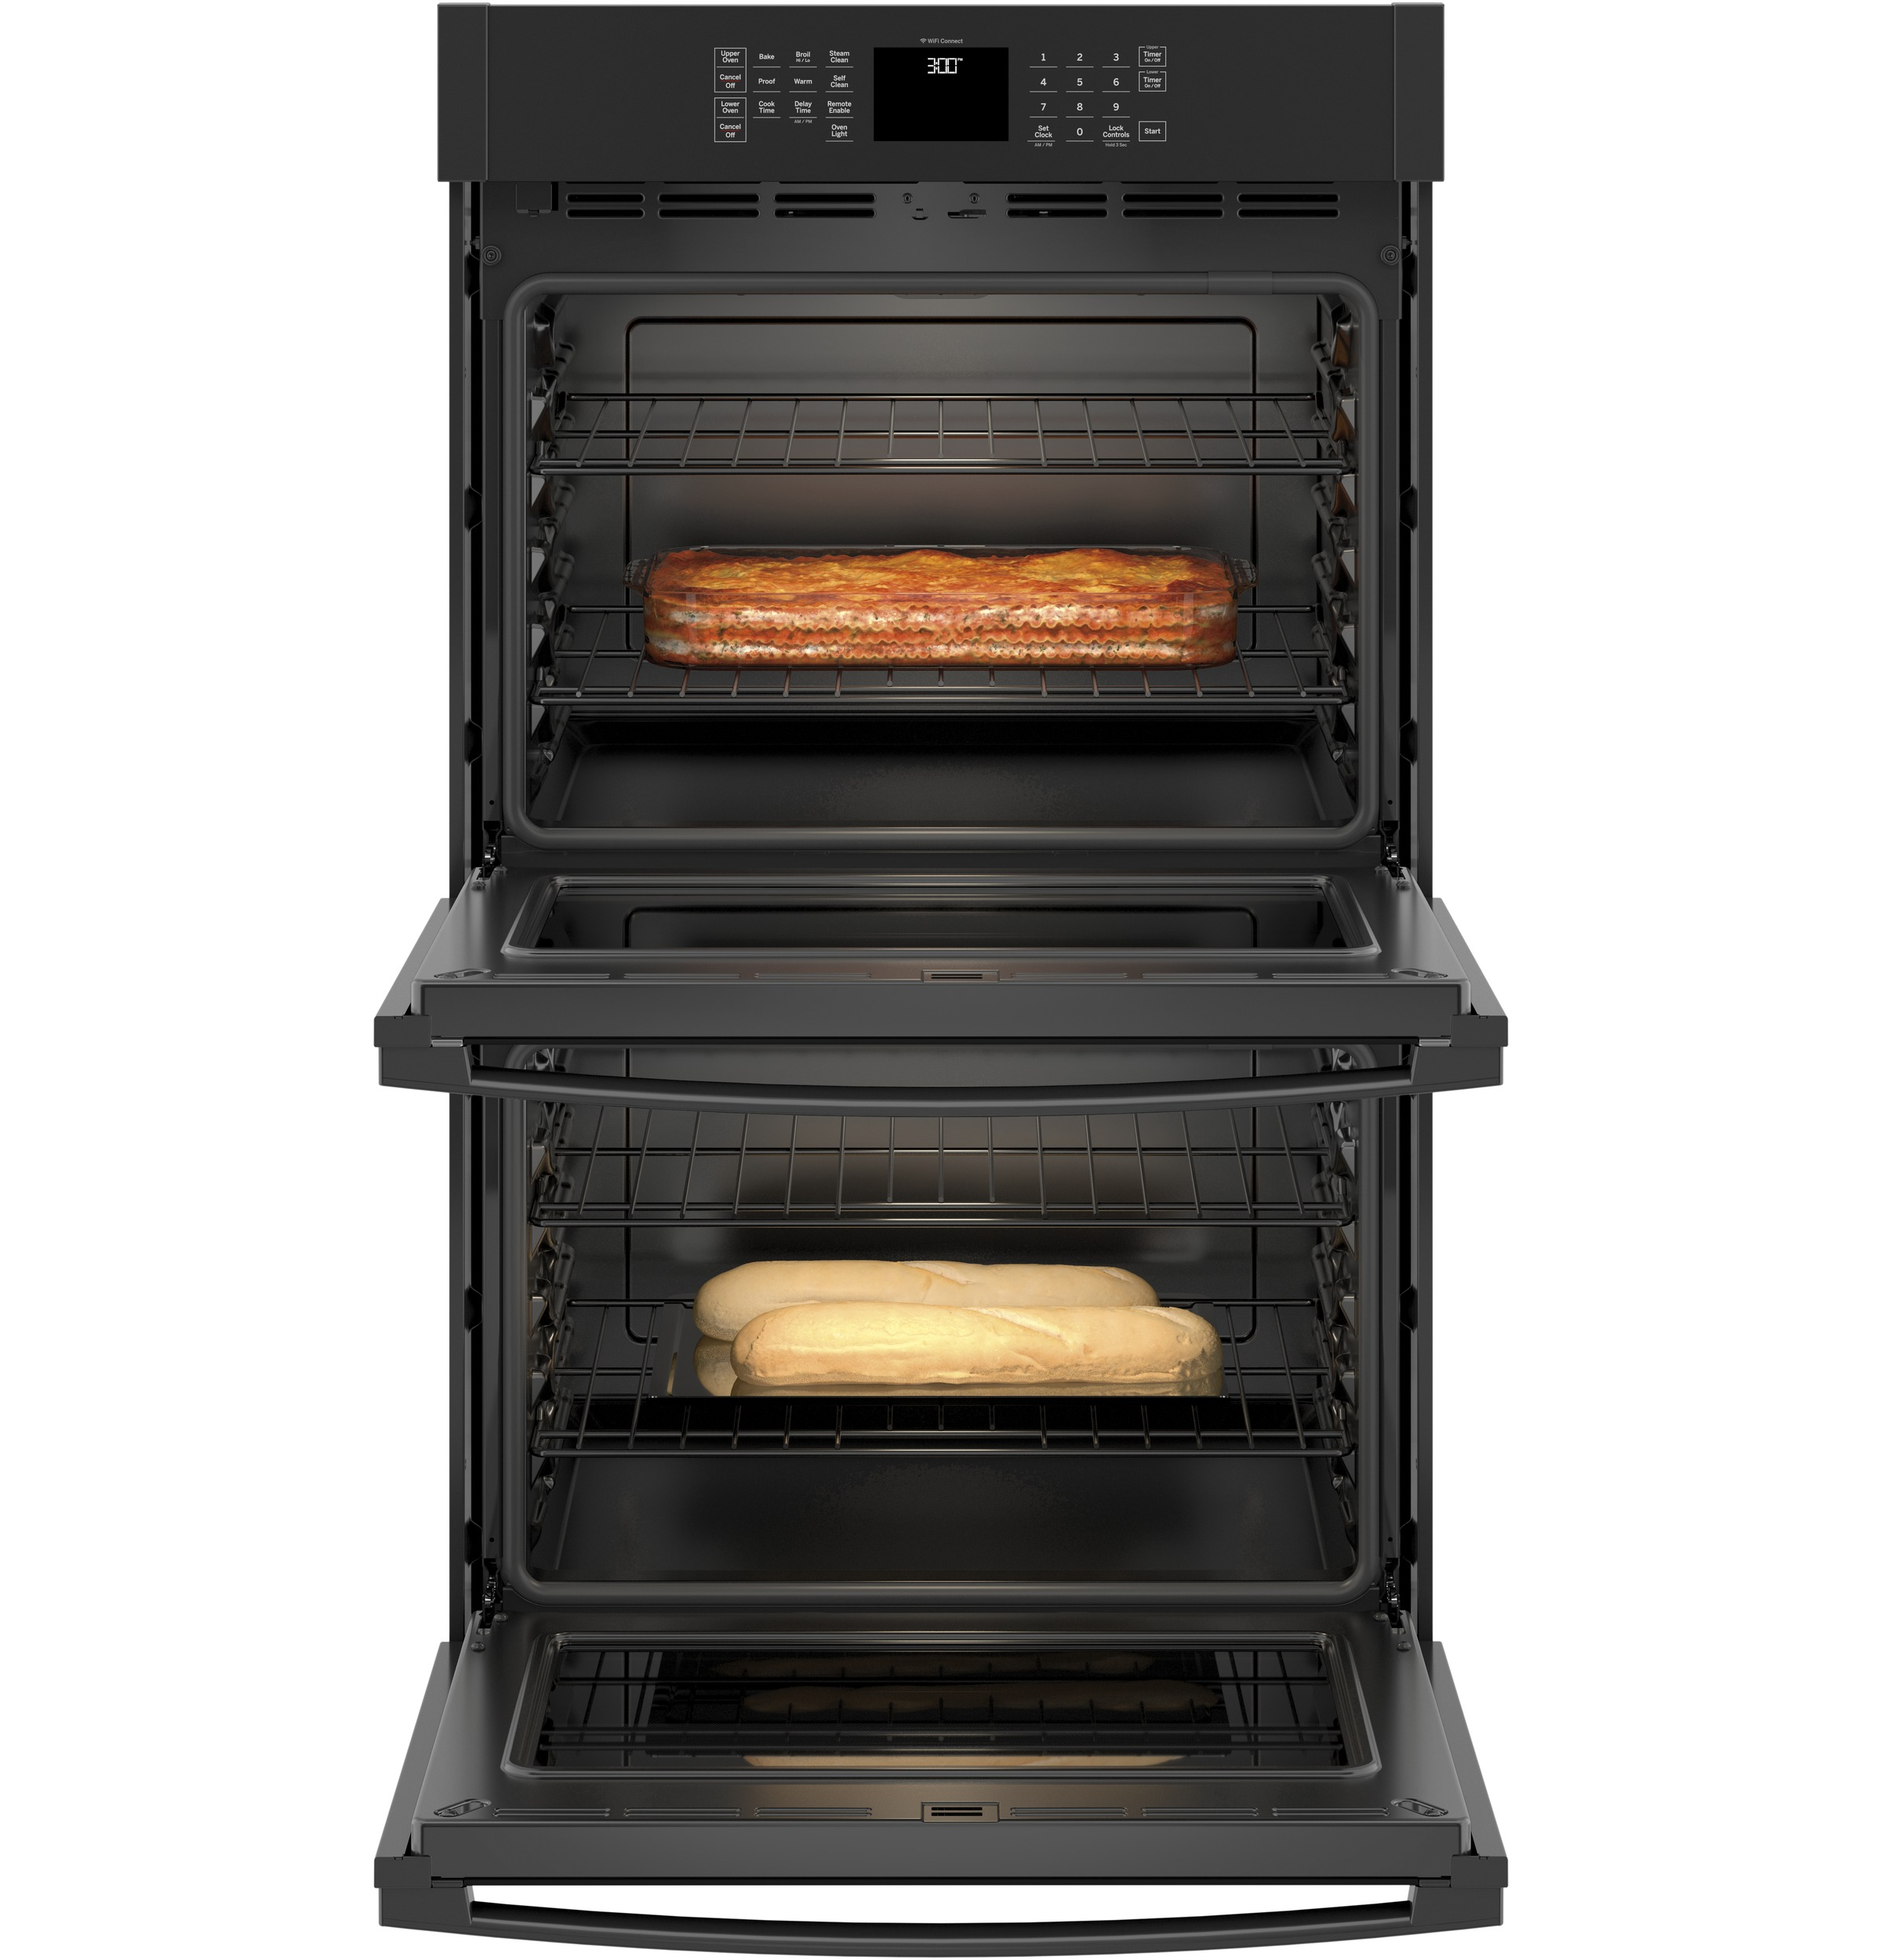 """Model: JTD3000DNBB   GE GE® 30"""" Smart Built-In Self-Clean Double Wall Oven with Never-Scrub Racks"""